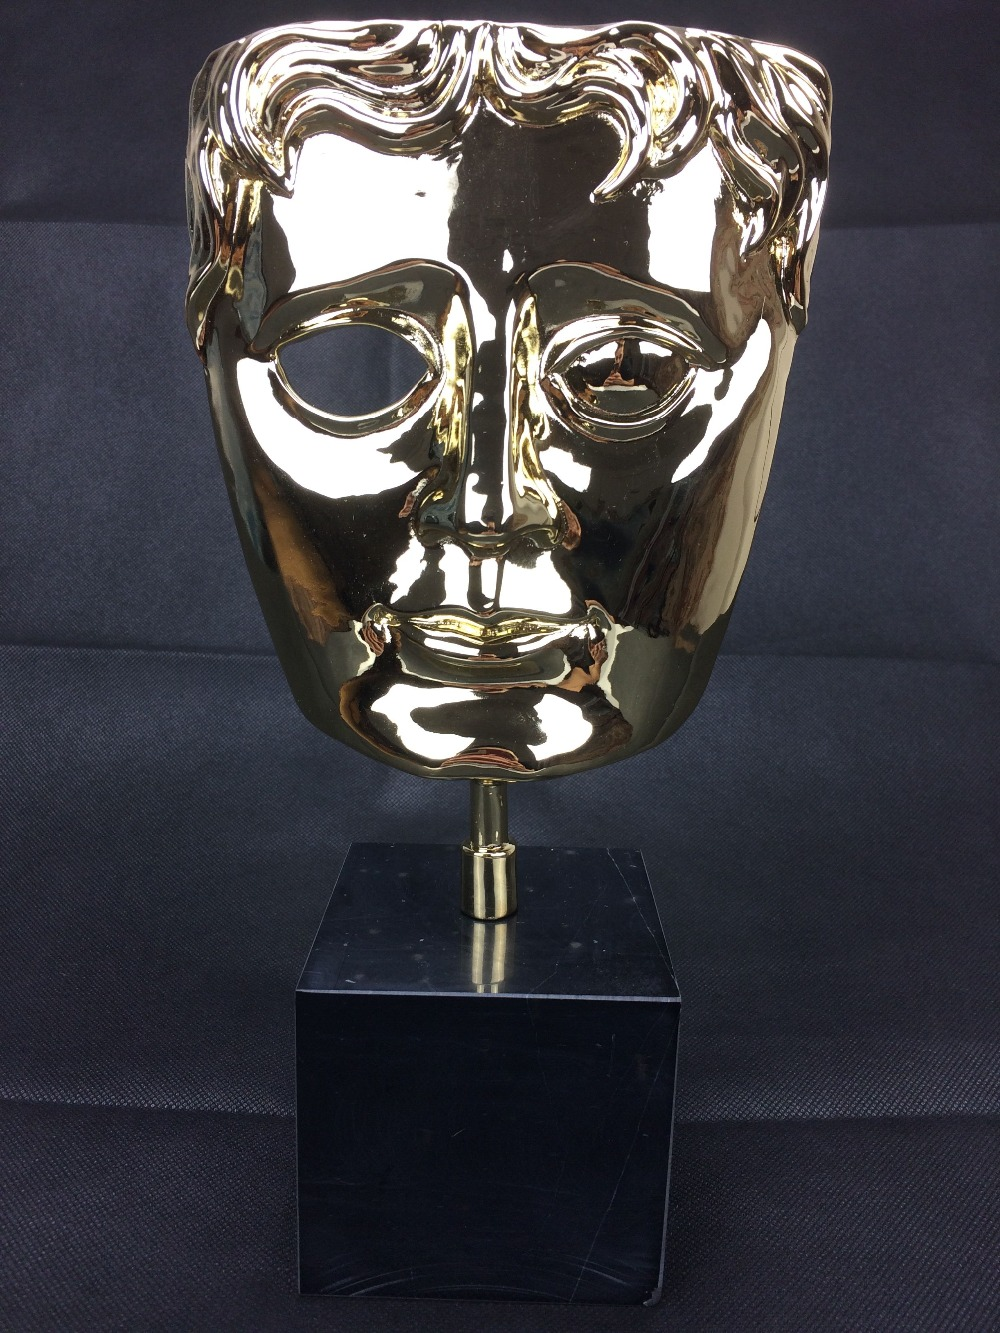 BAFTA Awards, réplique en métal BAFTA Awards, Britsish Academy Film Awards